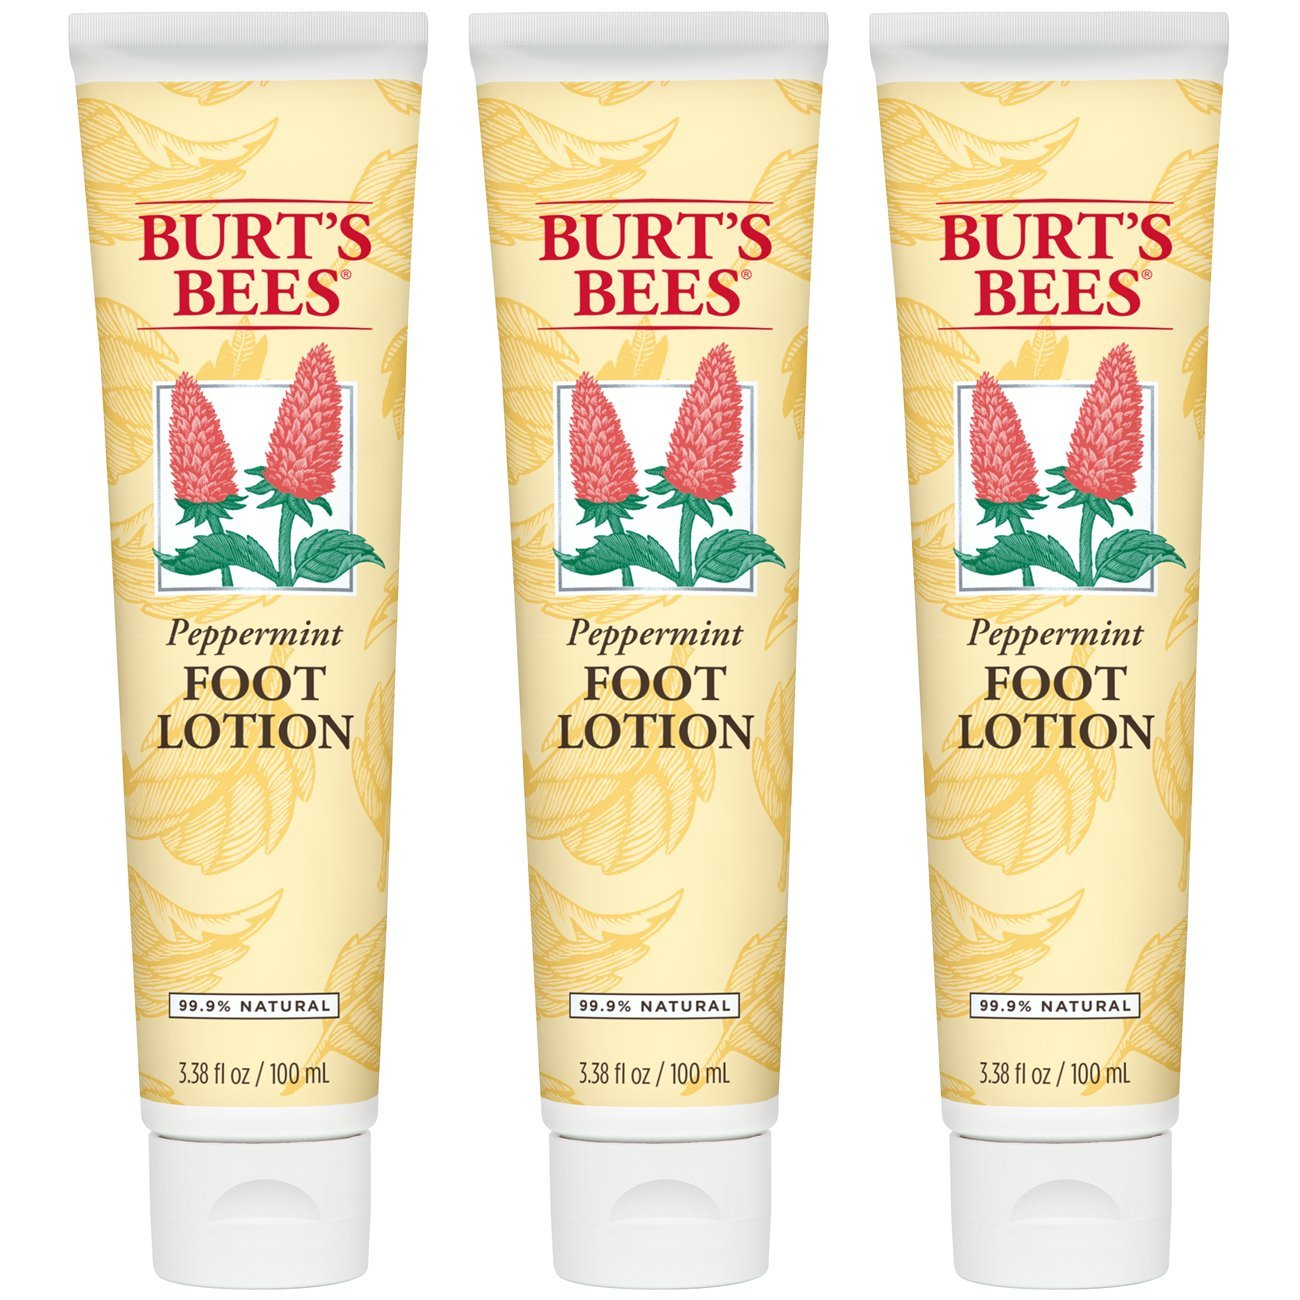 Burt's Bees Peppermint Foot Lotion - 3.38 Ounce Tube (Pack of 3) Burt' s Bees